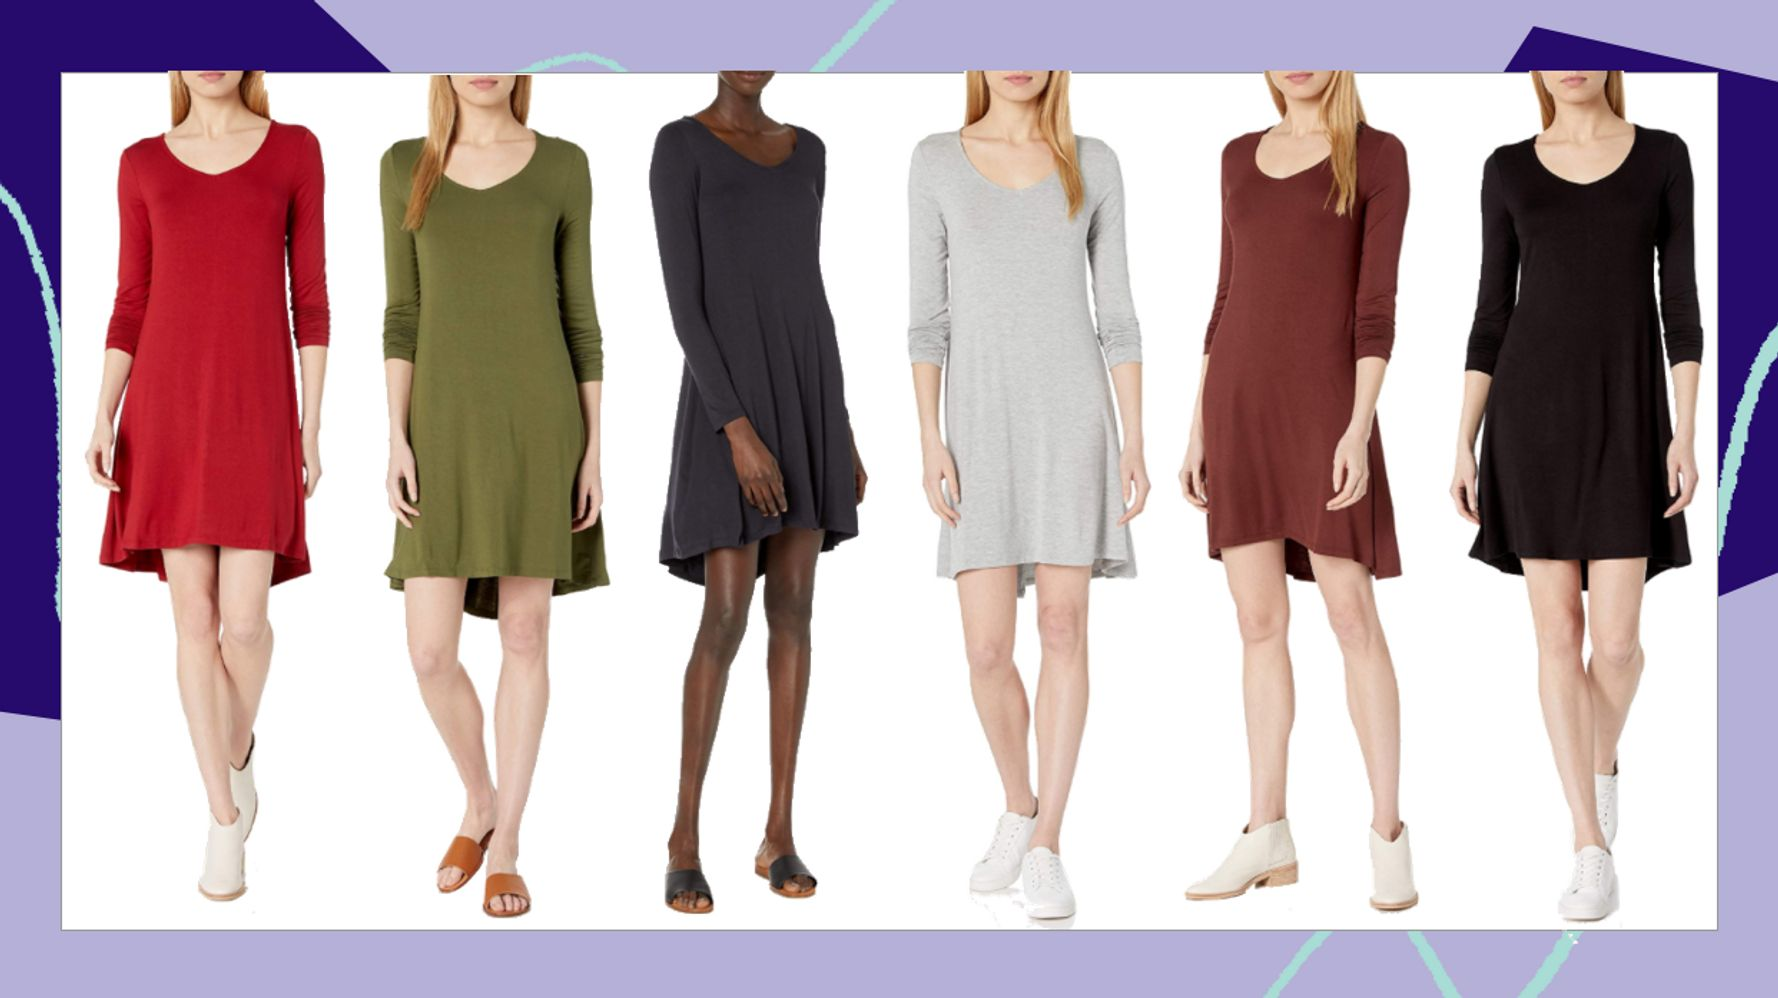 The Perfect Fall Dress Exists. And It's On Sale For $19 On Amazon. 1